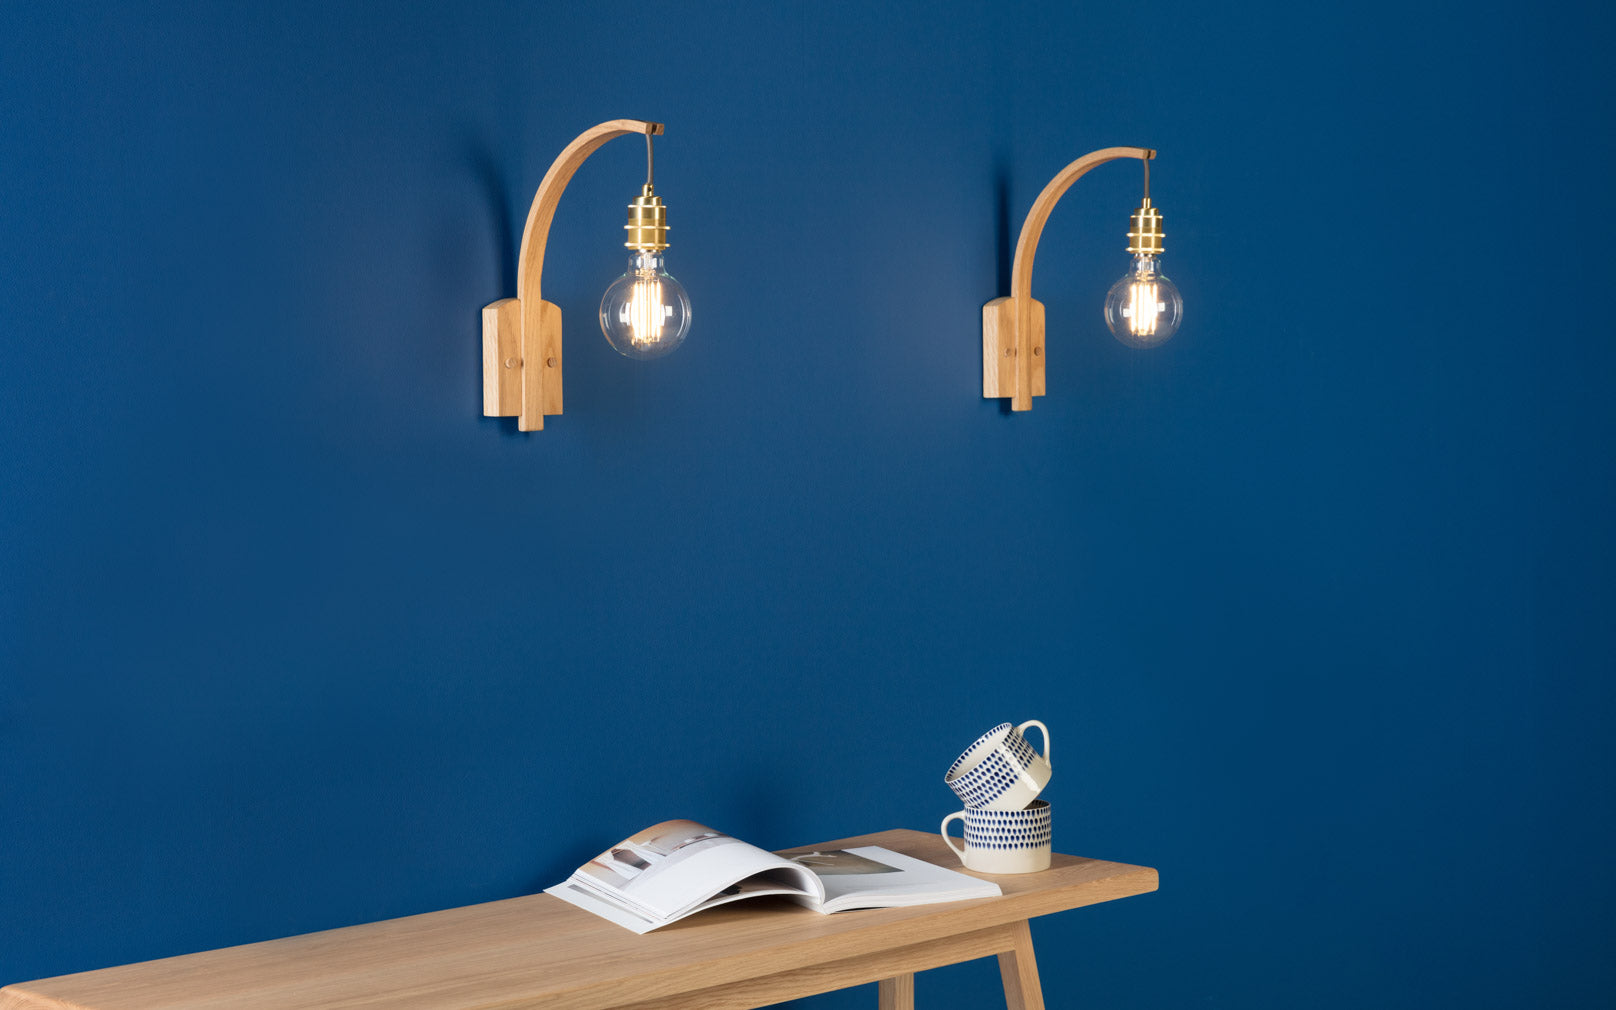 Hanter Wall Lights in Oak make a statement against a regal blue accent wall